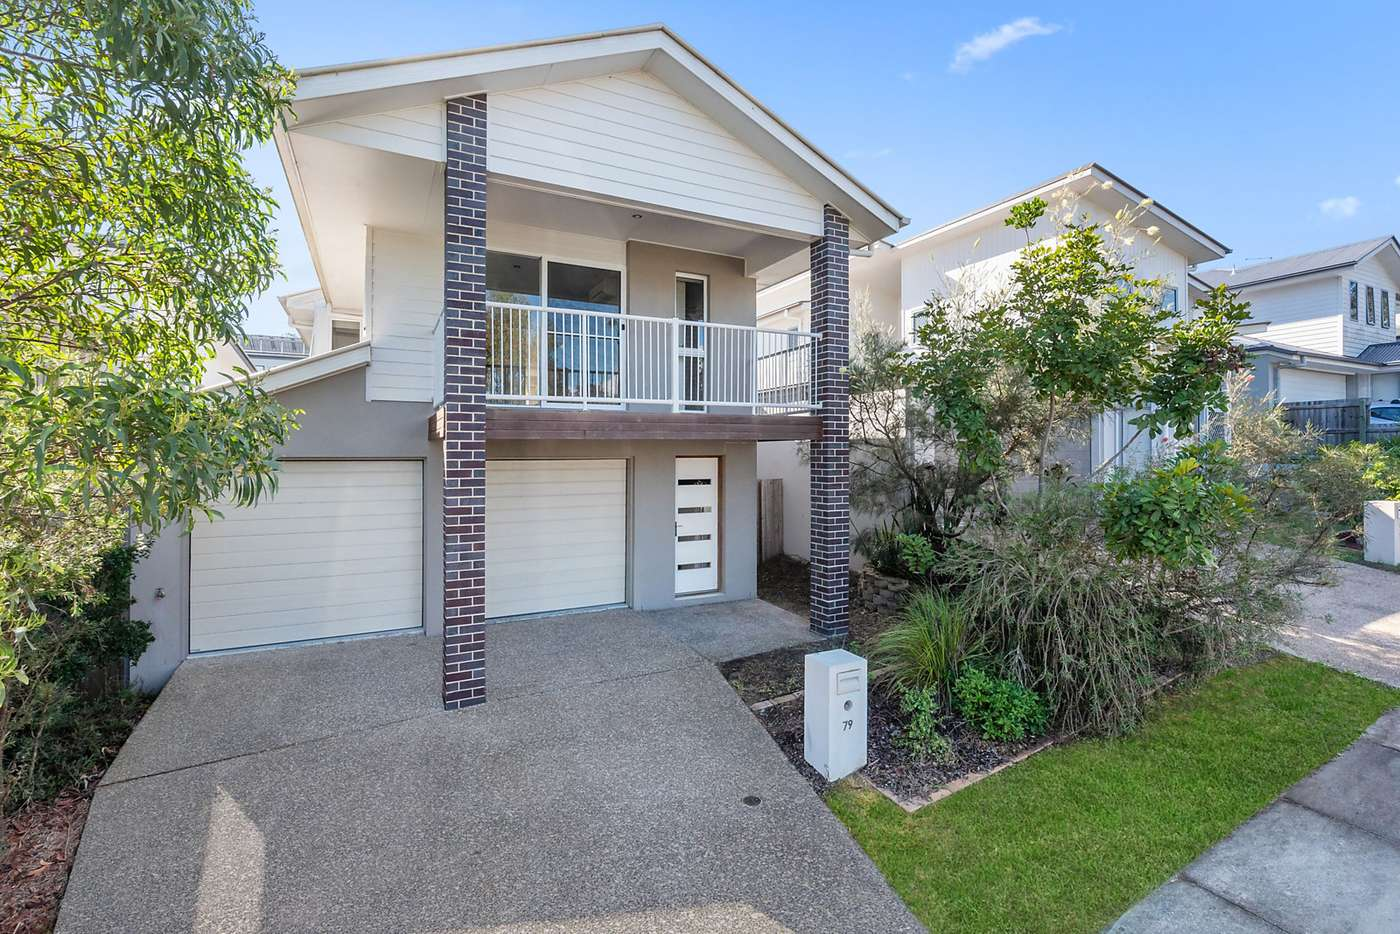 Main view of Homely house listing, 79 Willow Rise Drive, Waterford QLD 4133